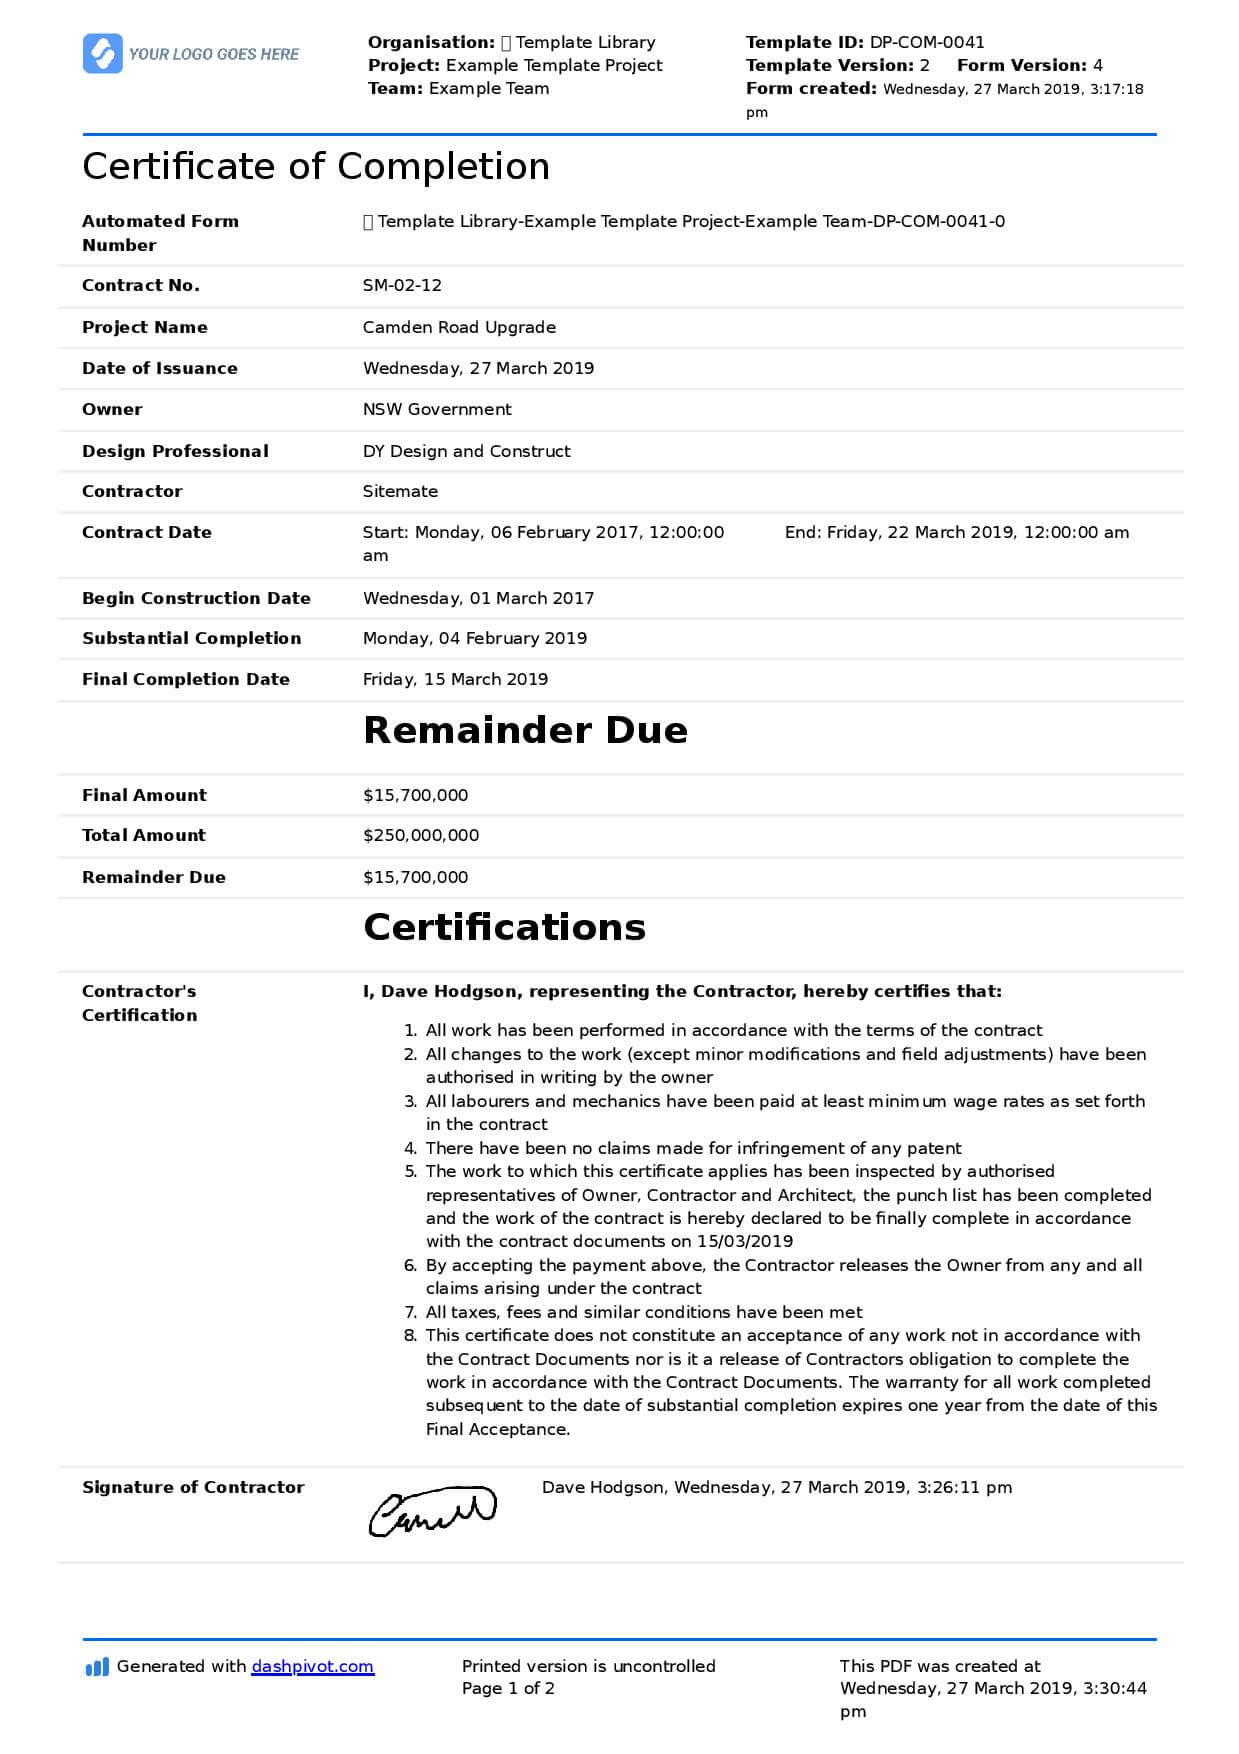 Certificate Of Completion For Construction (Free Template + In Construction Certificate Of Completion Template